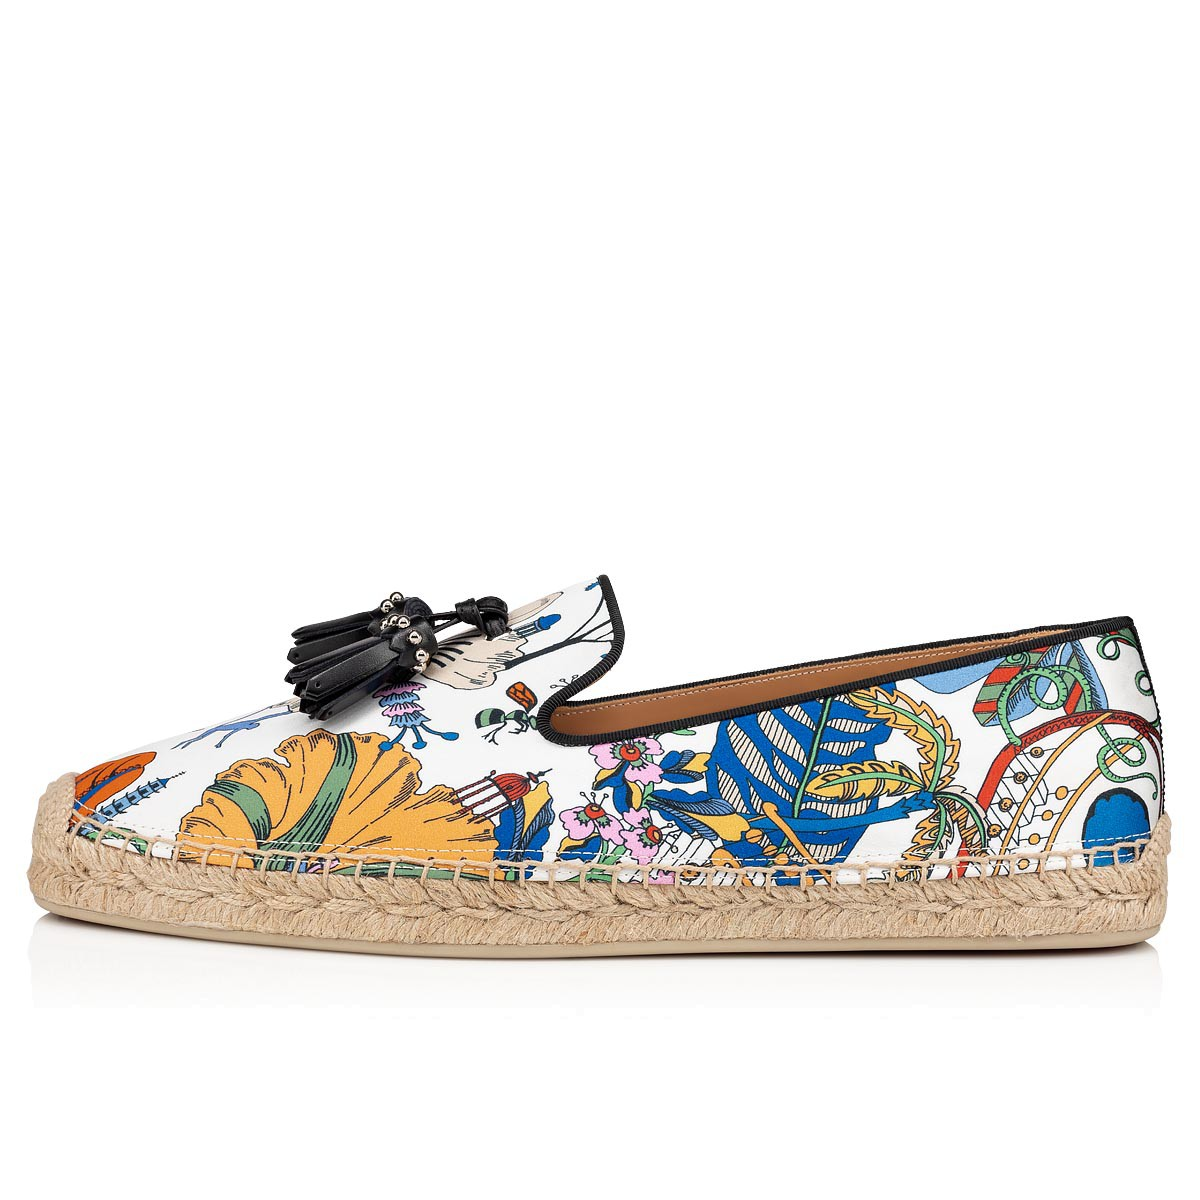 Souliers - Relax Max - Christian Louboutin